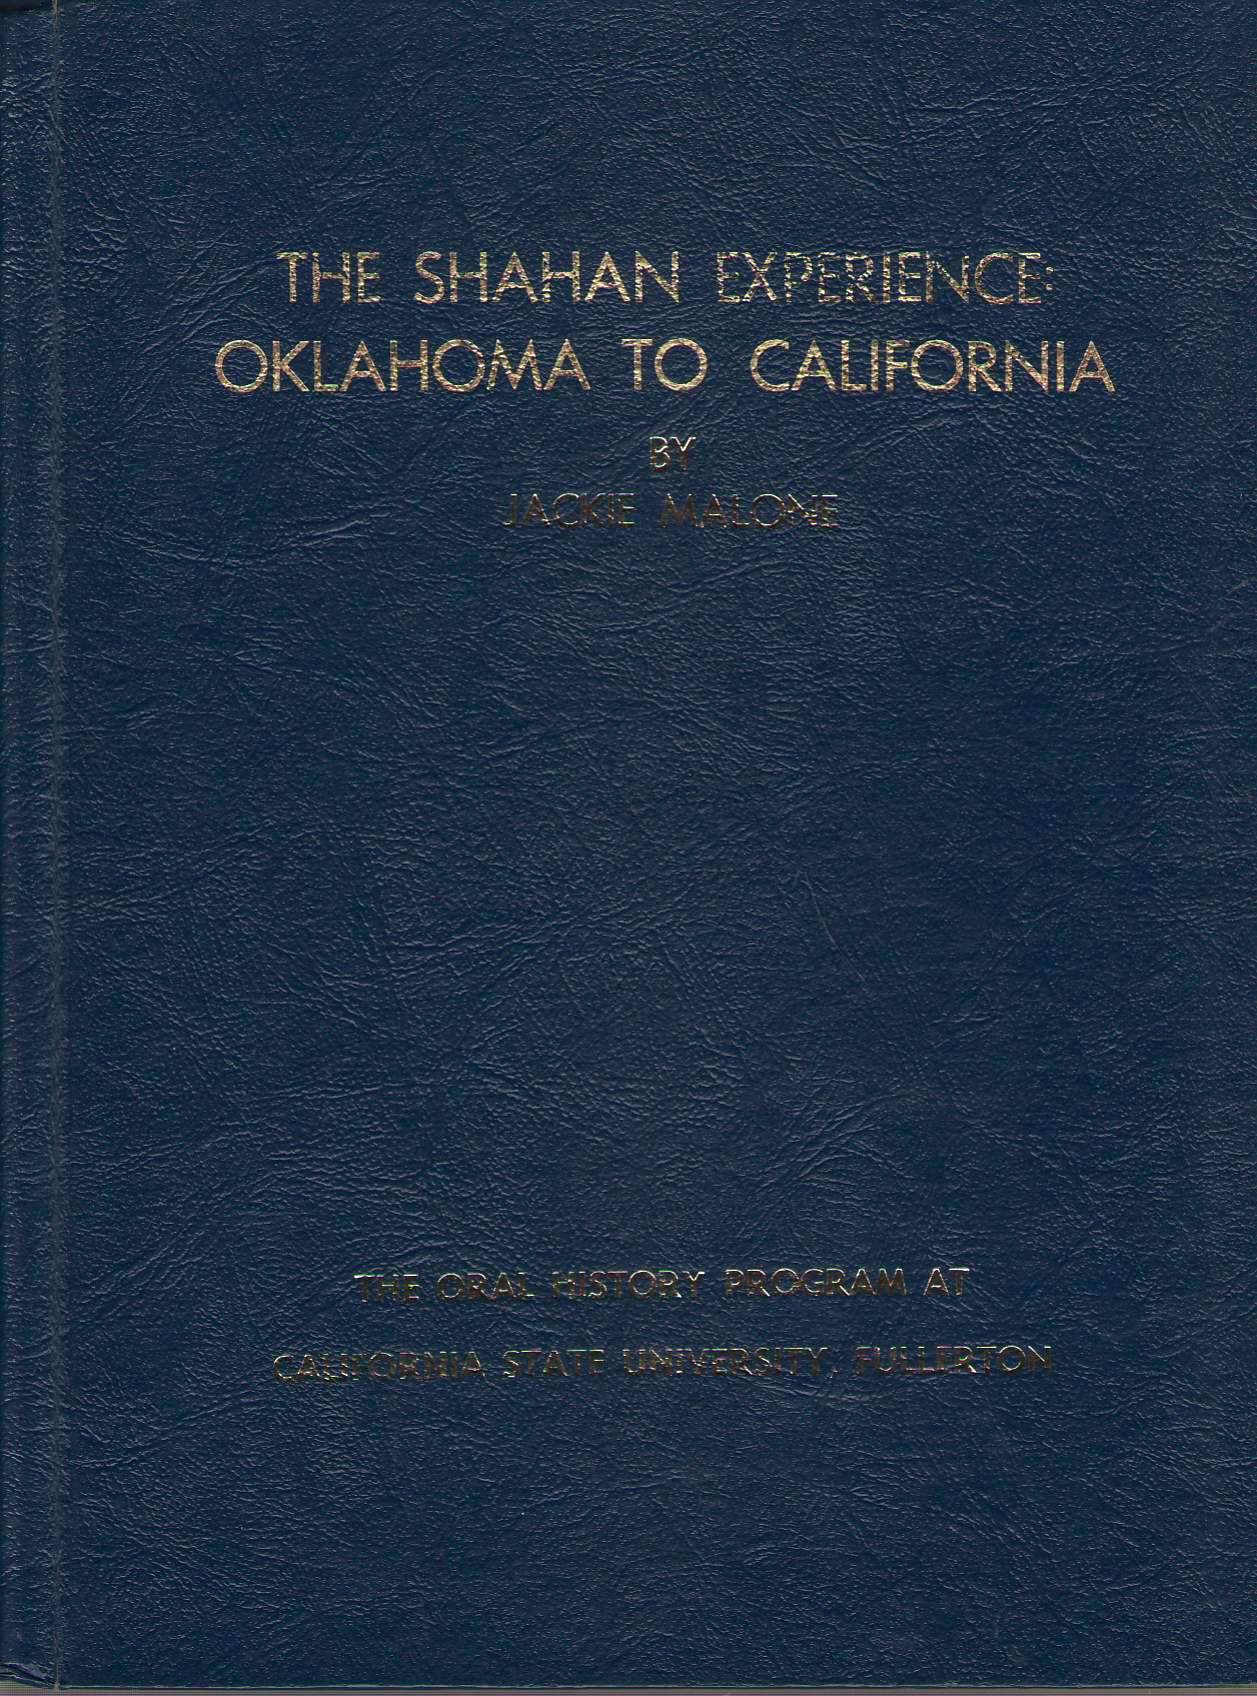 Image for The Shahan Experience: Oklahoma To California California State University Fullerton Oral History Program